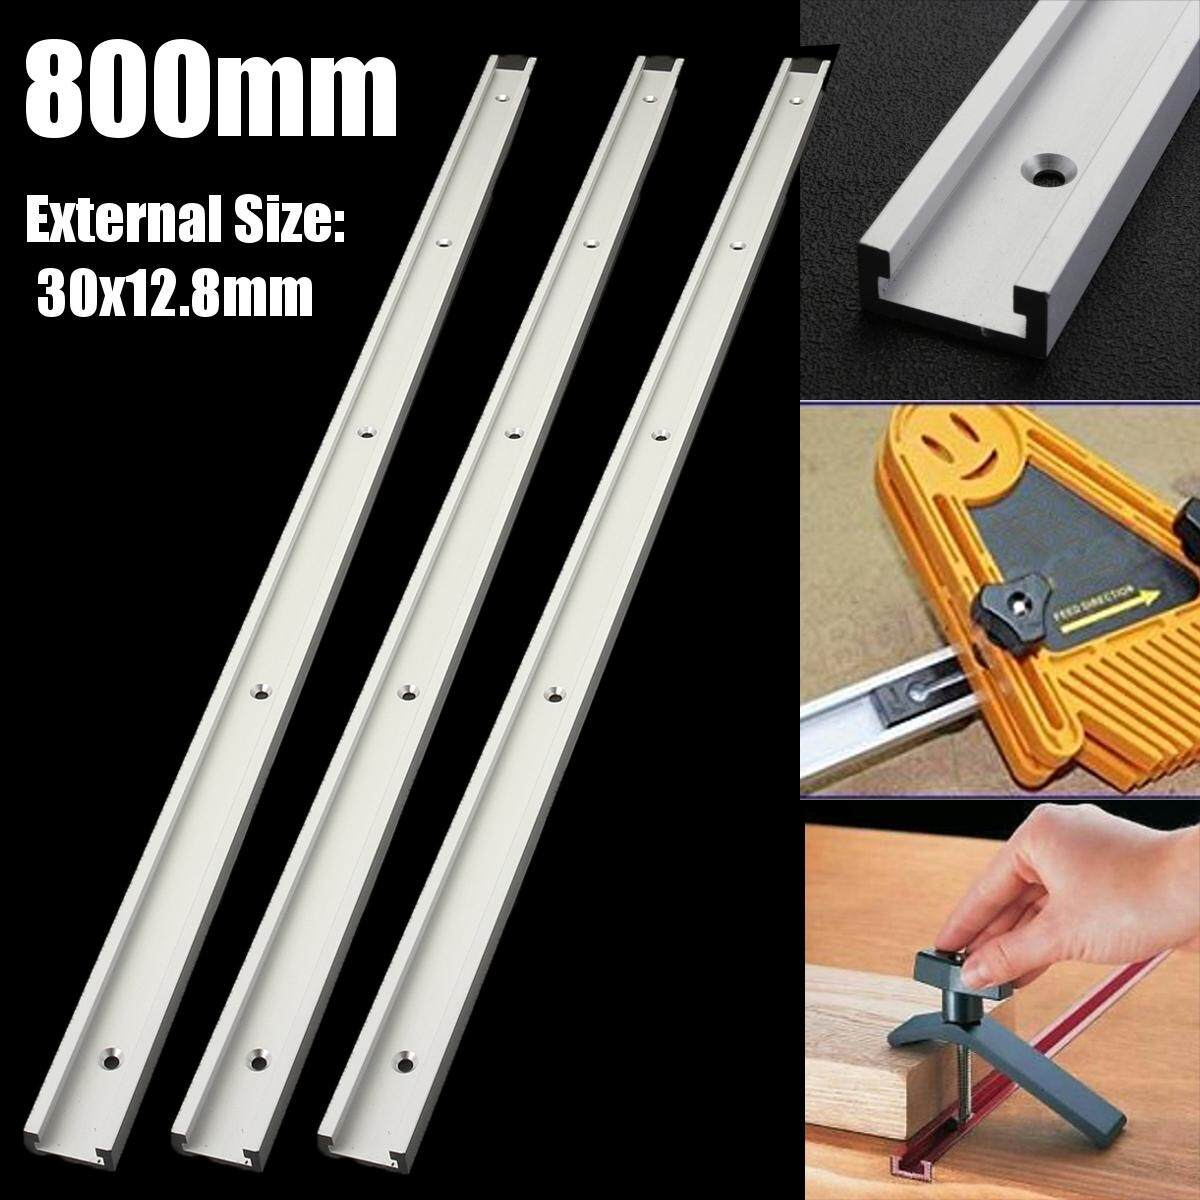 800mm T Slot Miter Track Jig Fixture Tracks For Router Woodworking Table Tool Tangga Lipat Aluminium Krisbow 13m 6 Step Kw0102783